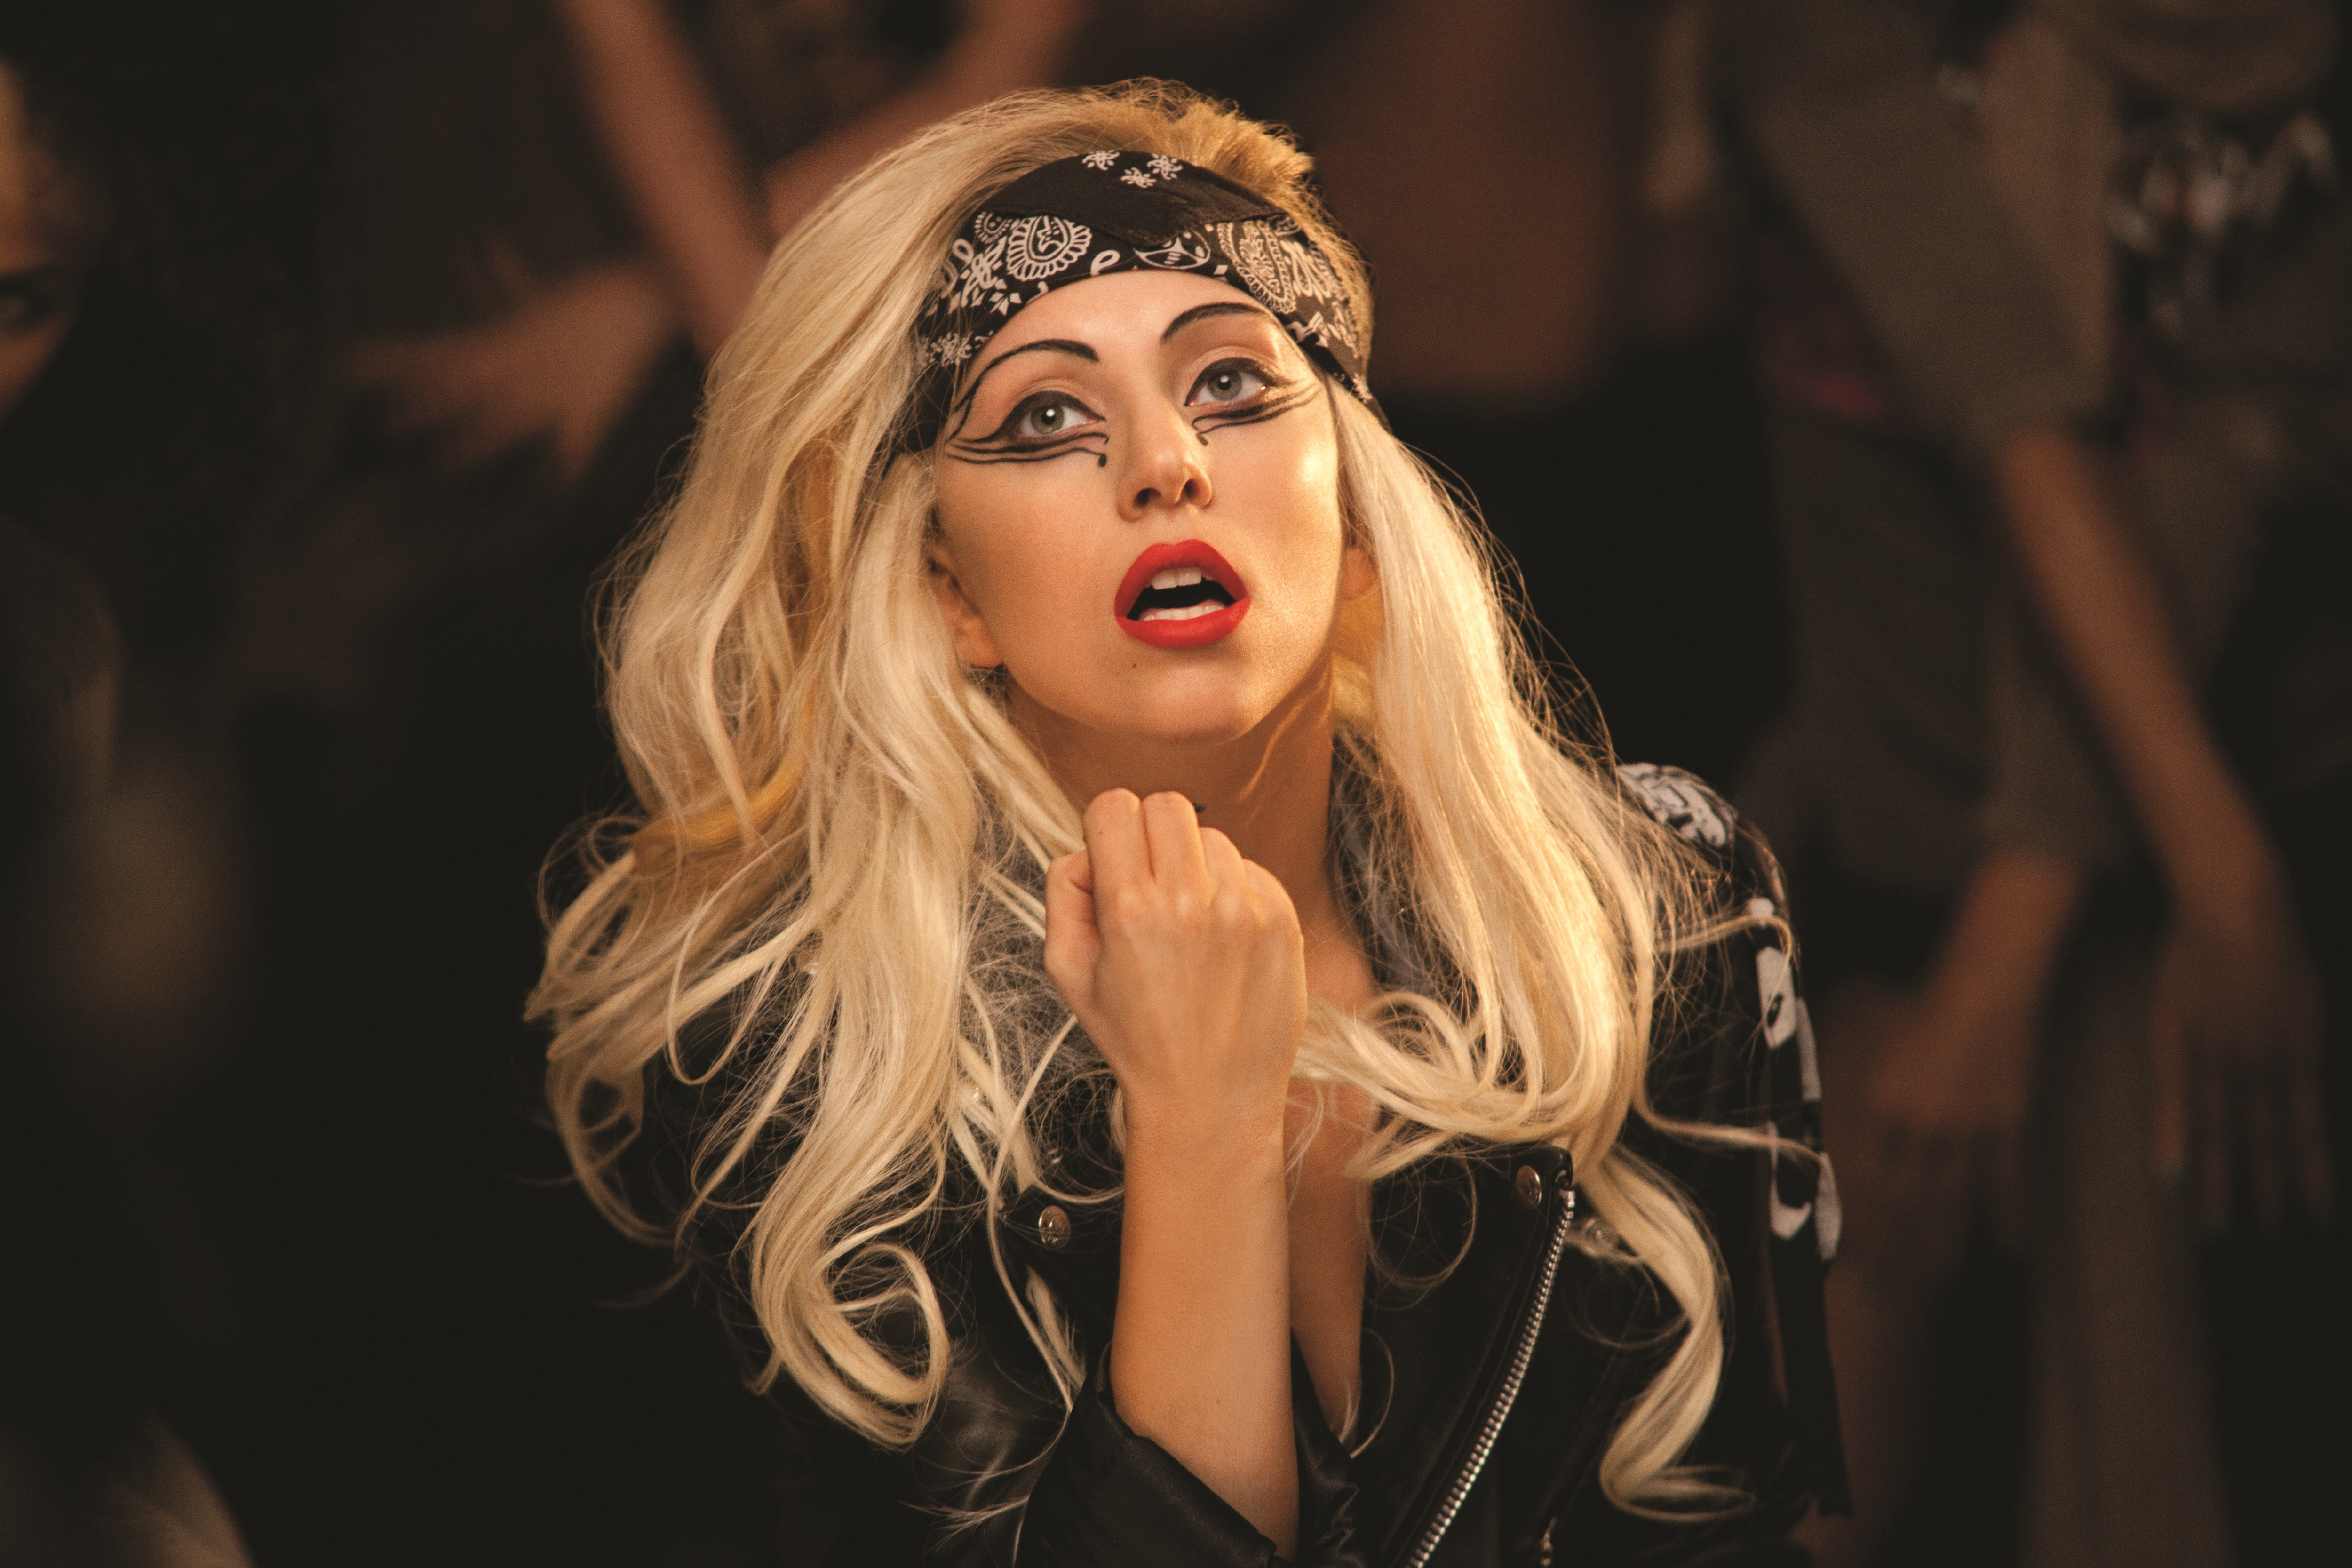 282 Lady Gaga Hd Wallpapers Background Images Wallpaper